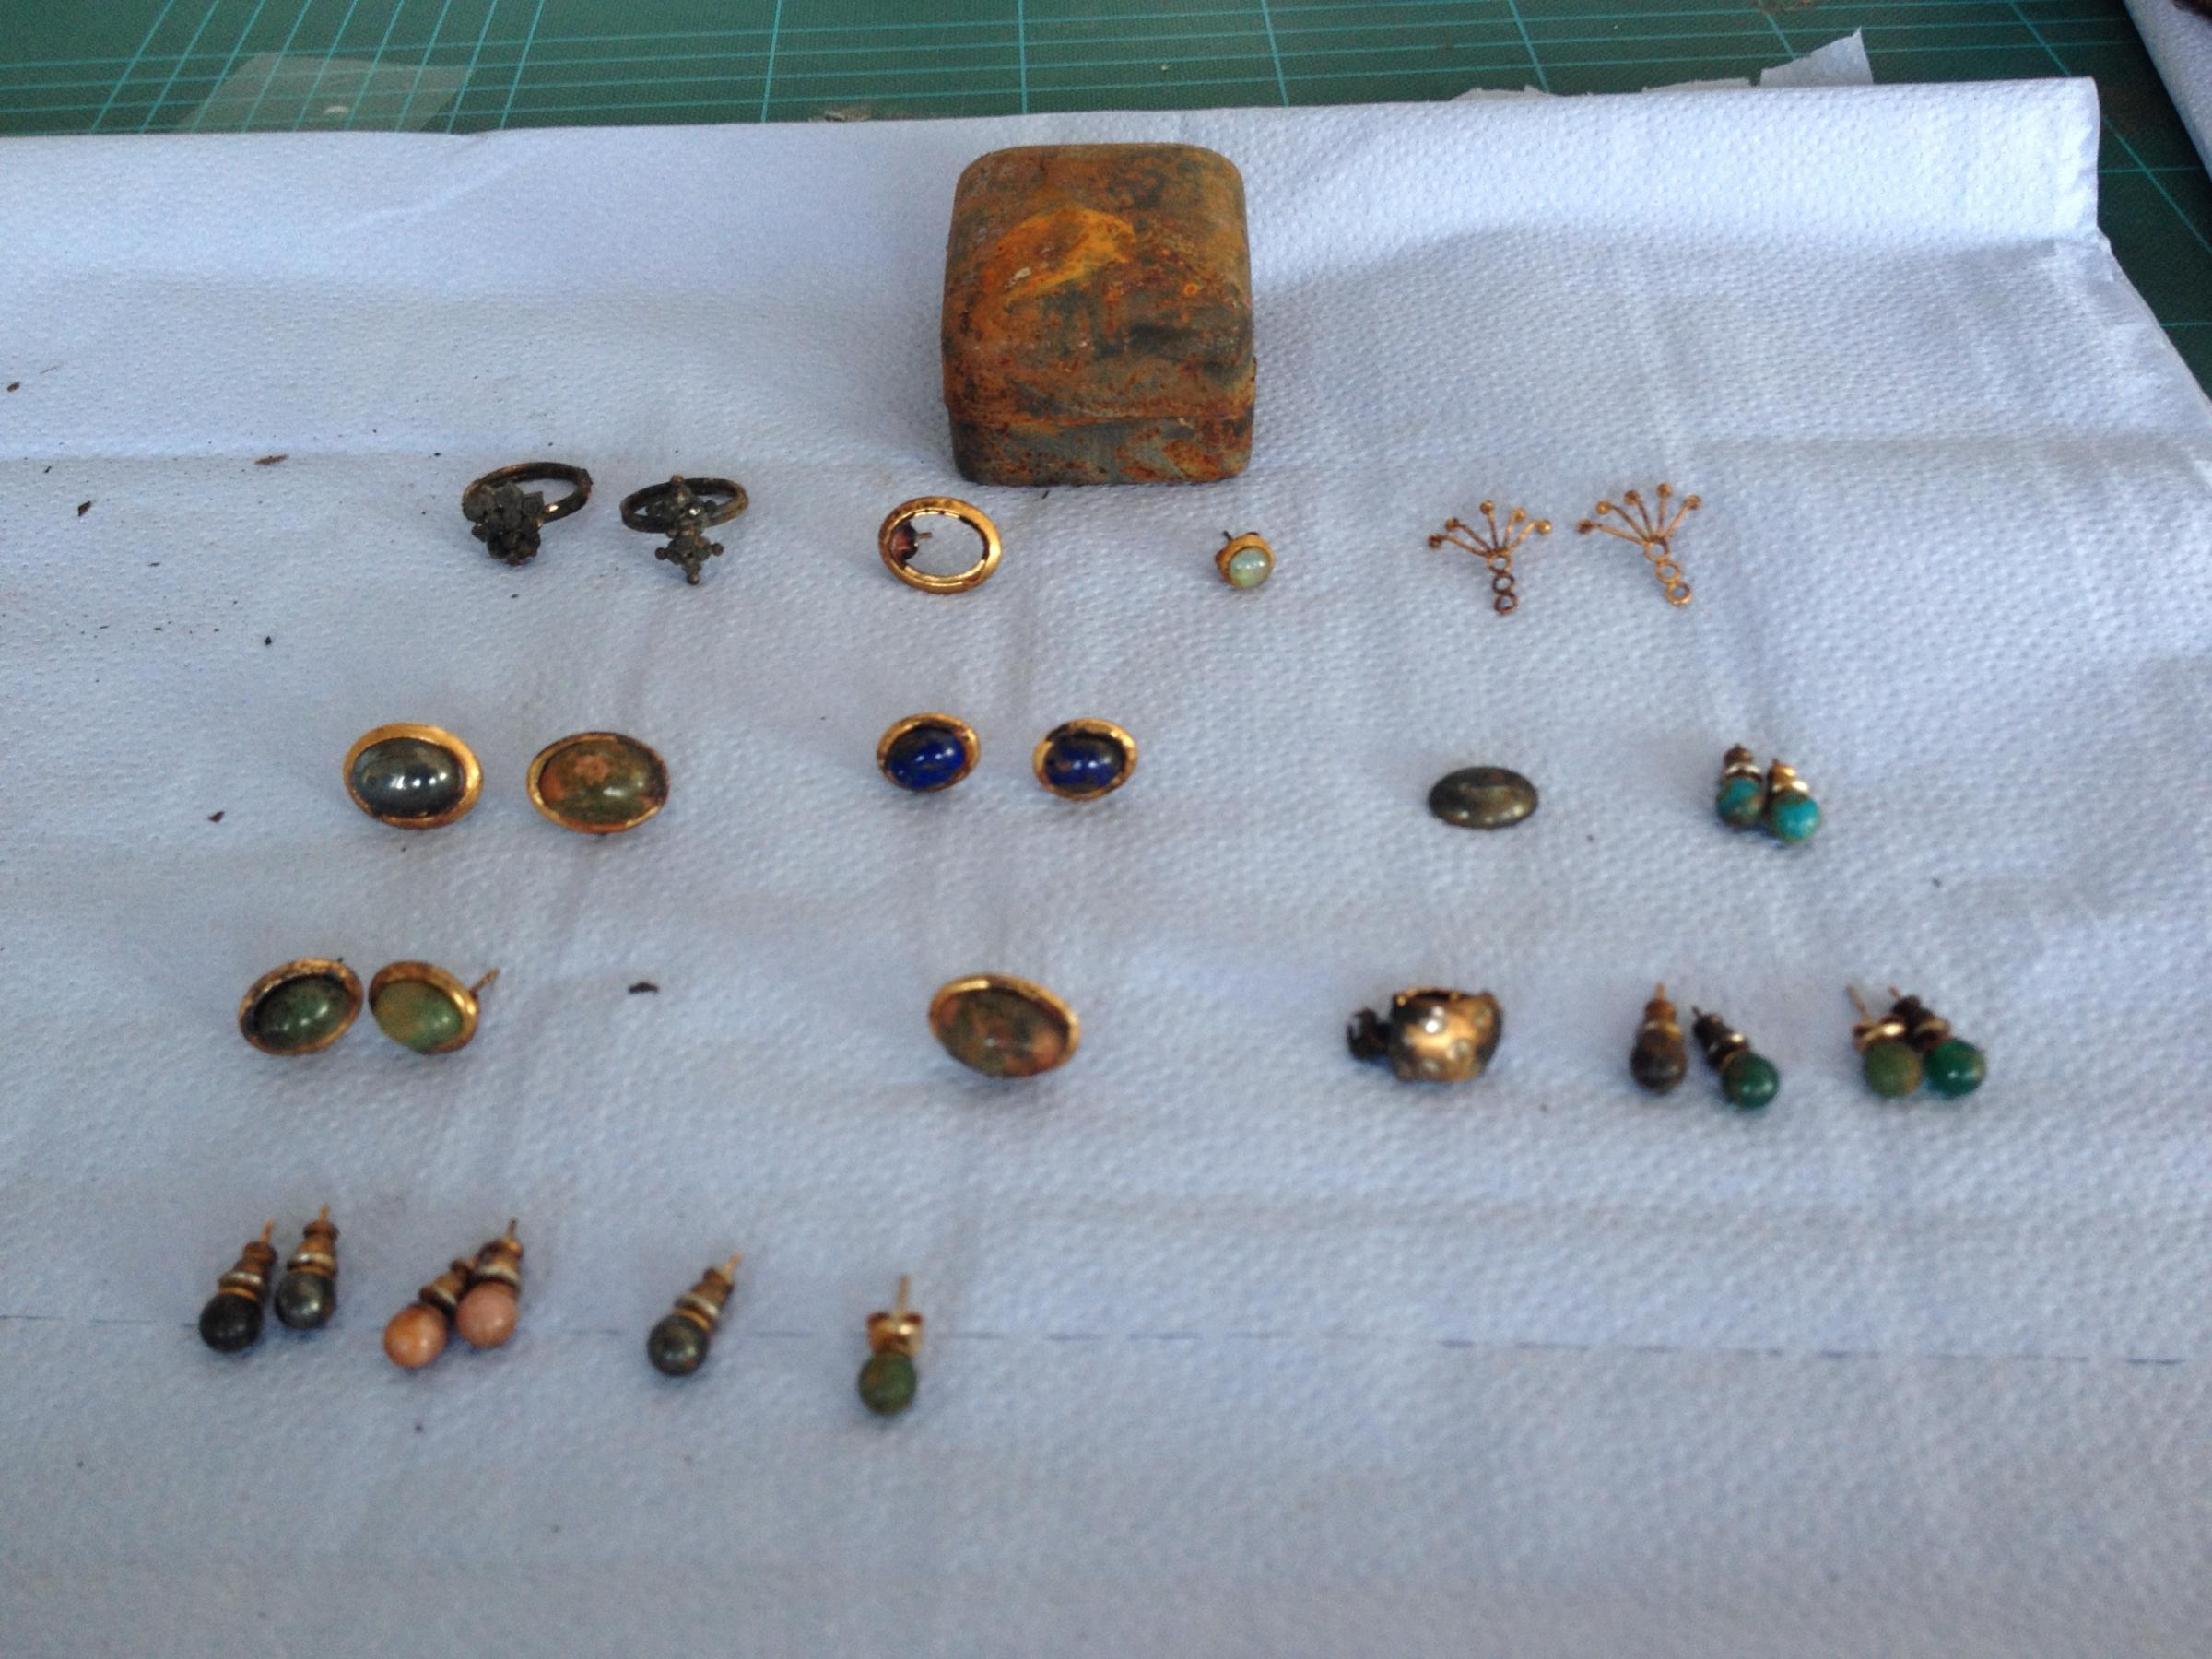 Fire damaged jewellery found in Leigh